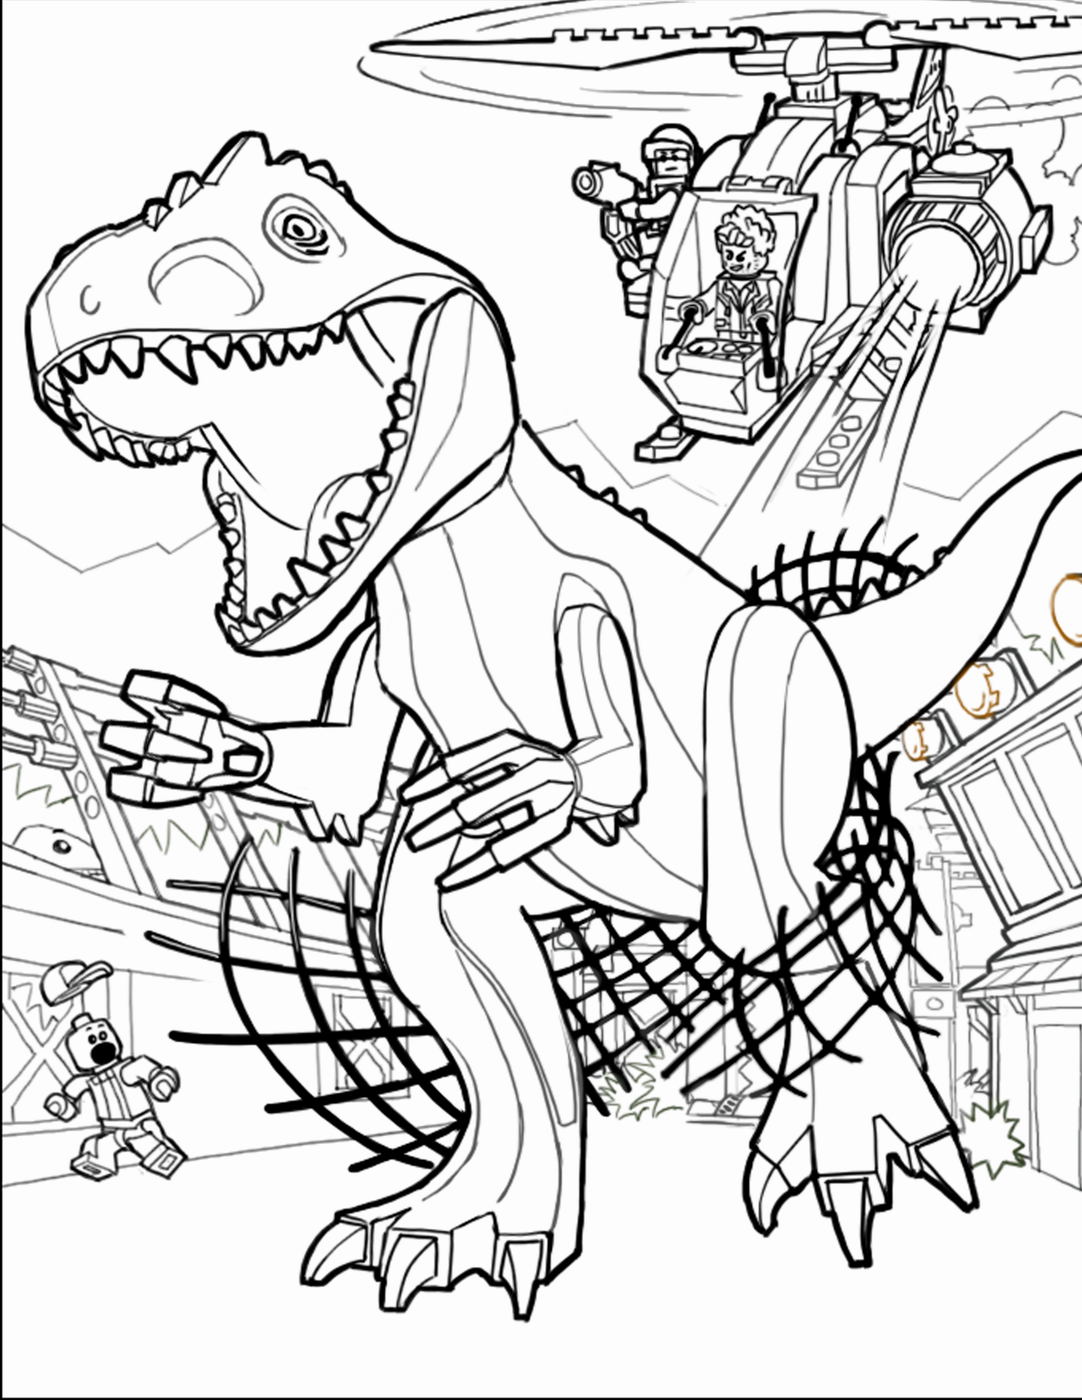 Colouring in jurassic park - Lego Coloring Pages Jurassic World